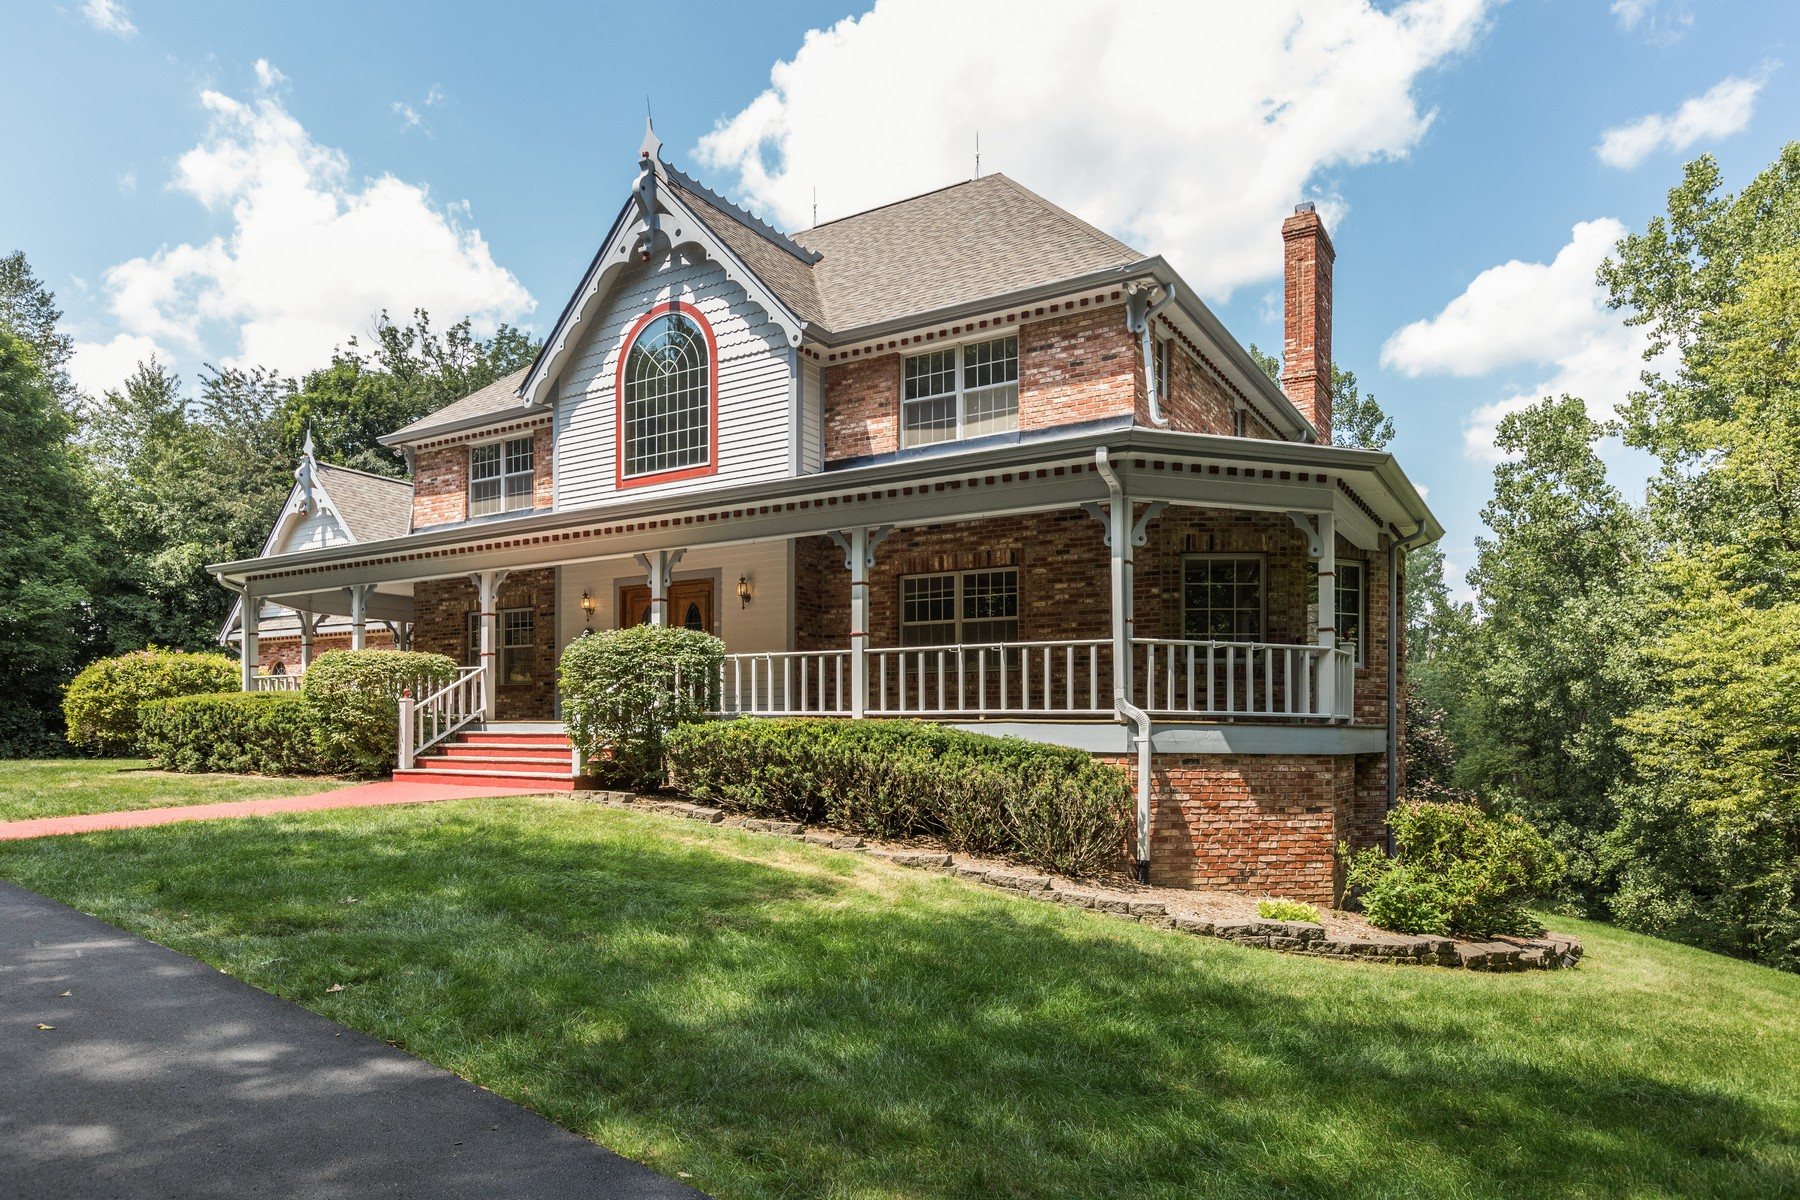 Single Family Home for Sale at Exquisite Victorian Home 7418 W 96th Street, Zionsville, Indiana, 46077 United States